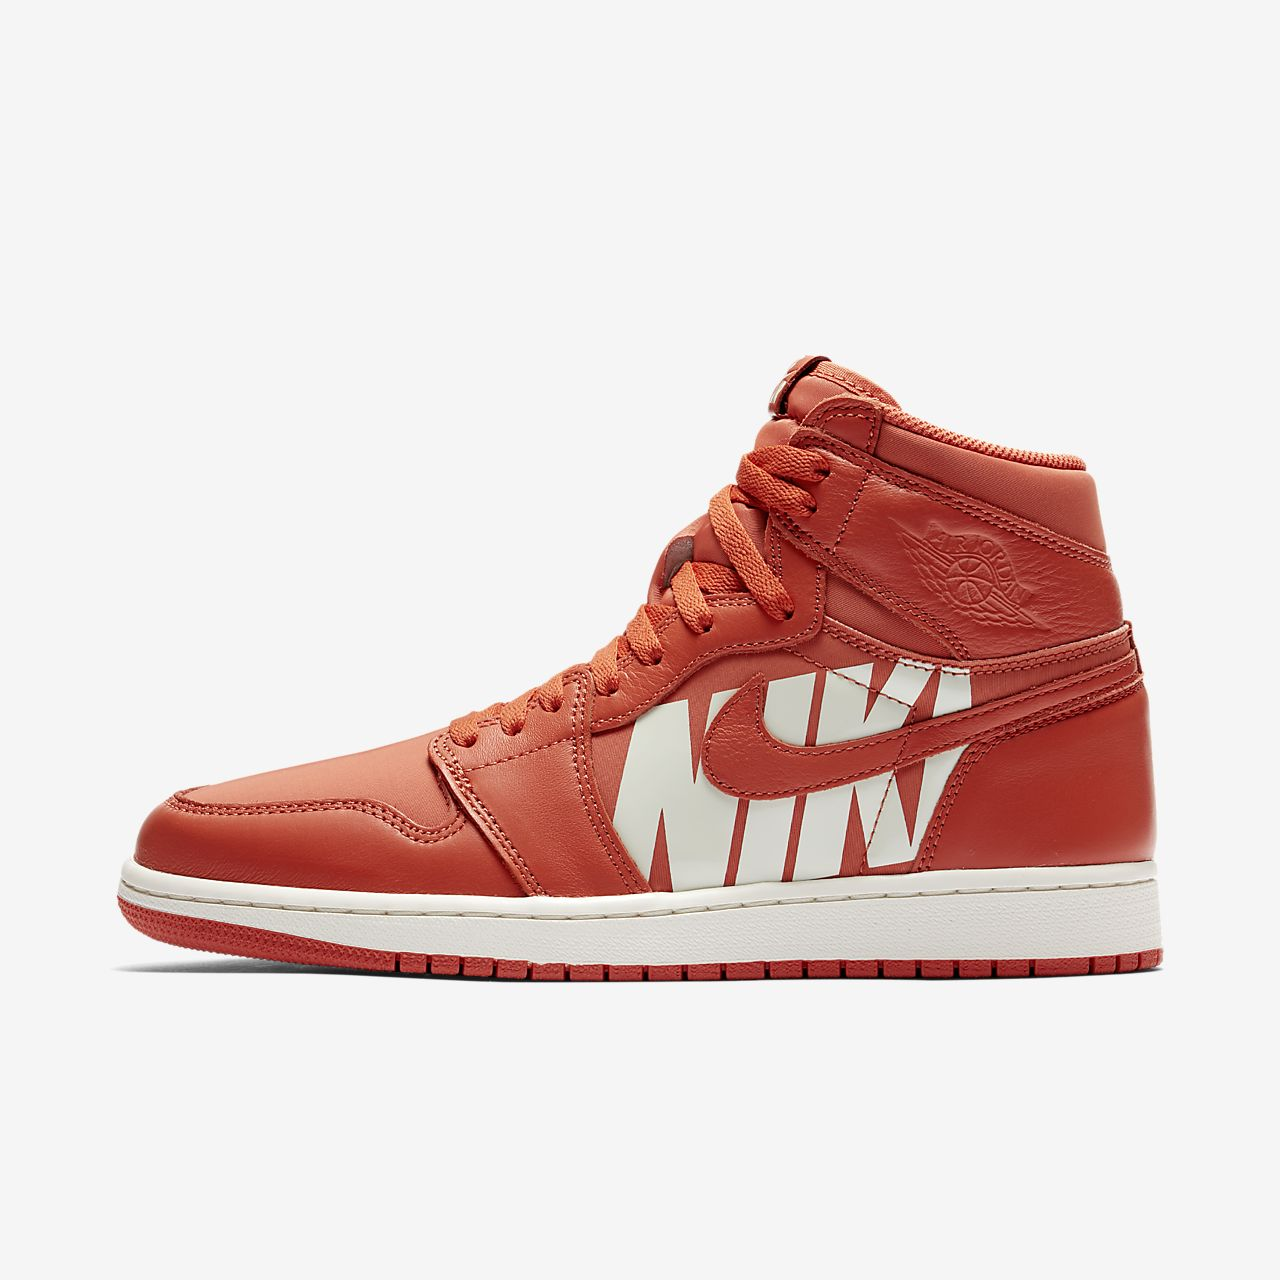 f6c4388dbc573f Air Jordan 1 Retro High OG Shoe. Nike.com ZA